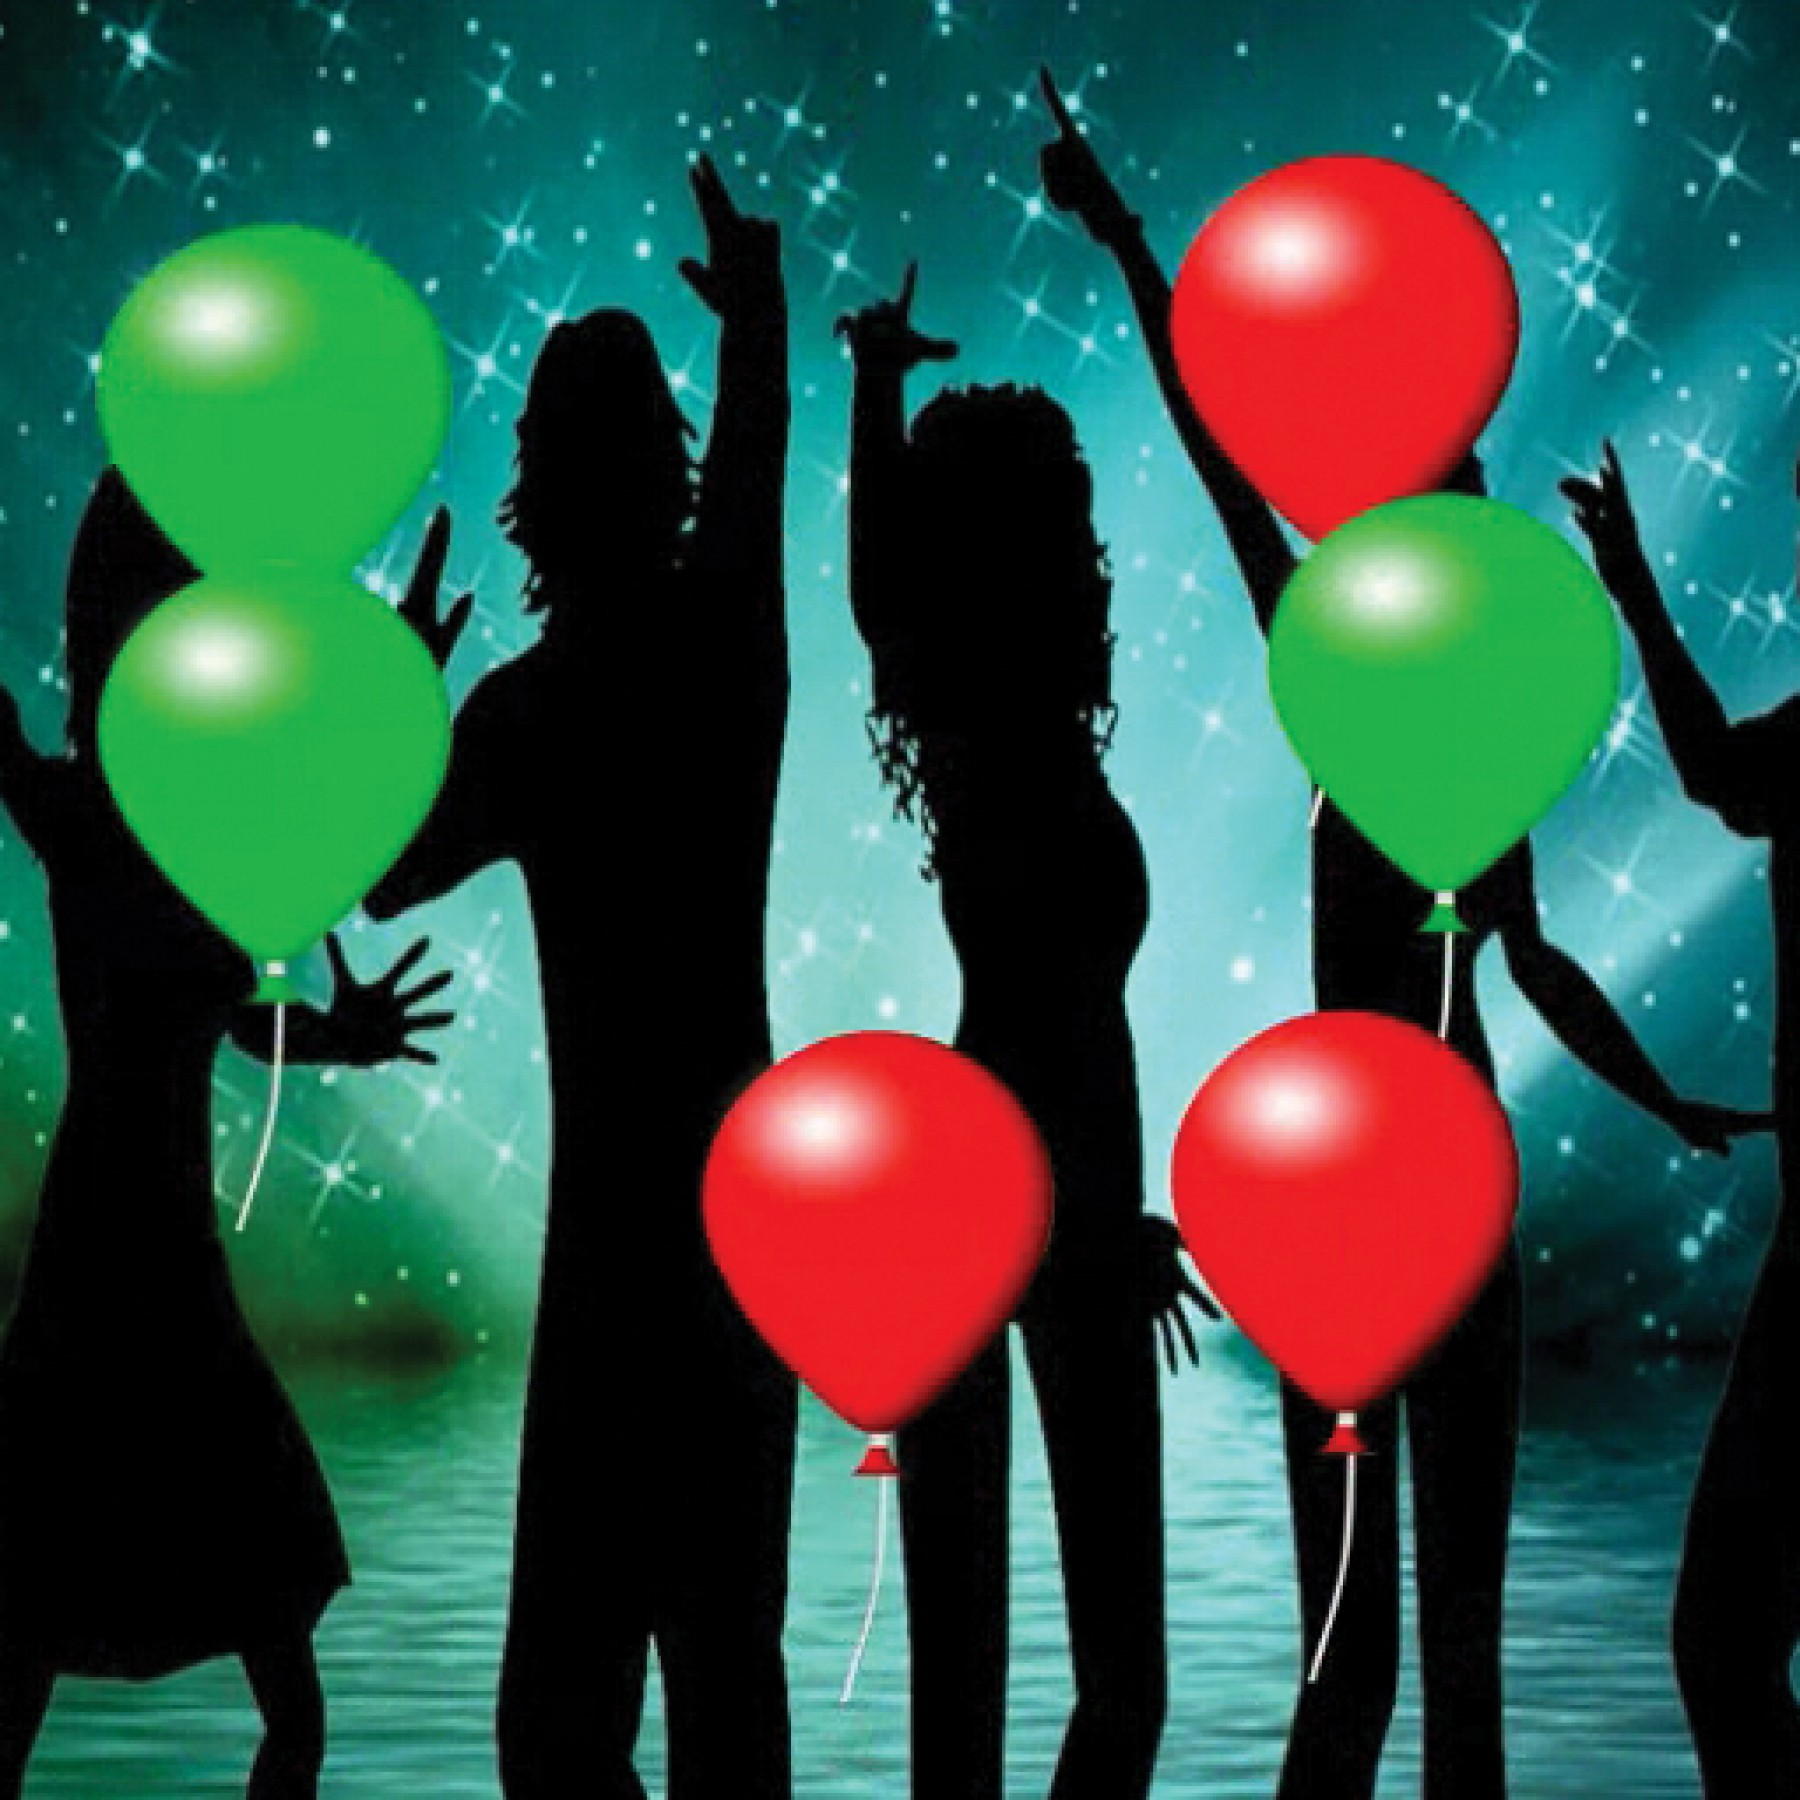 party-popper-music-entertainment-kids-adults-main-location